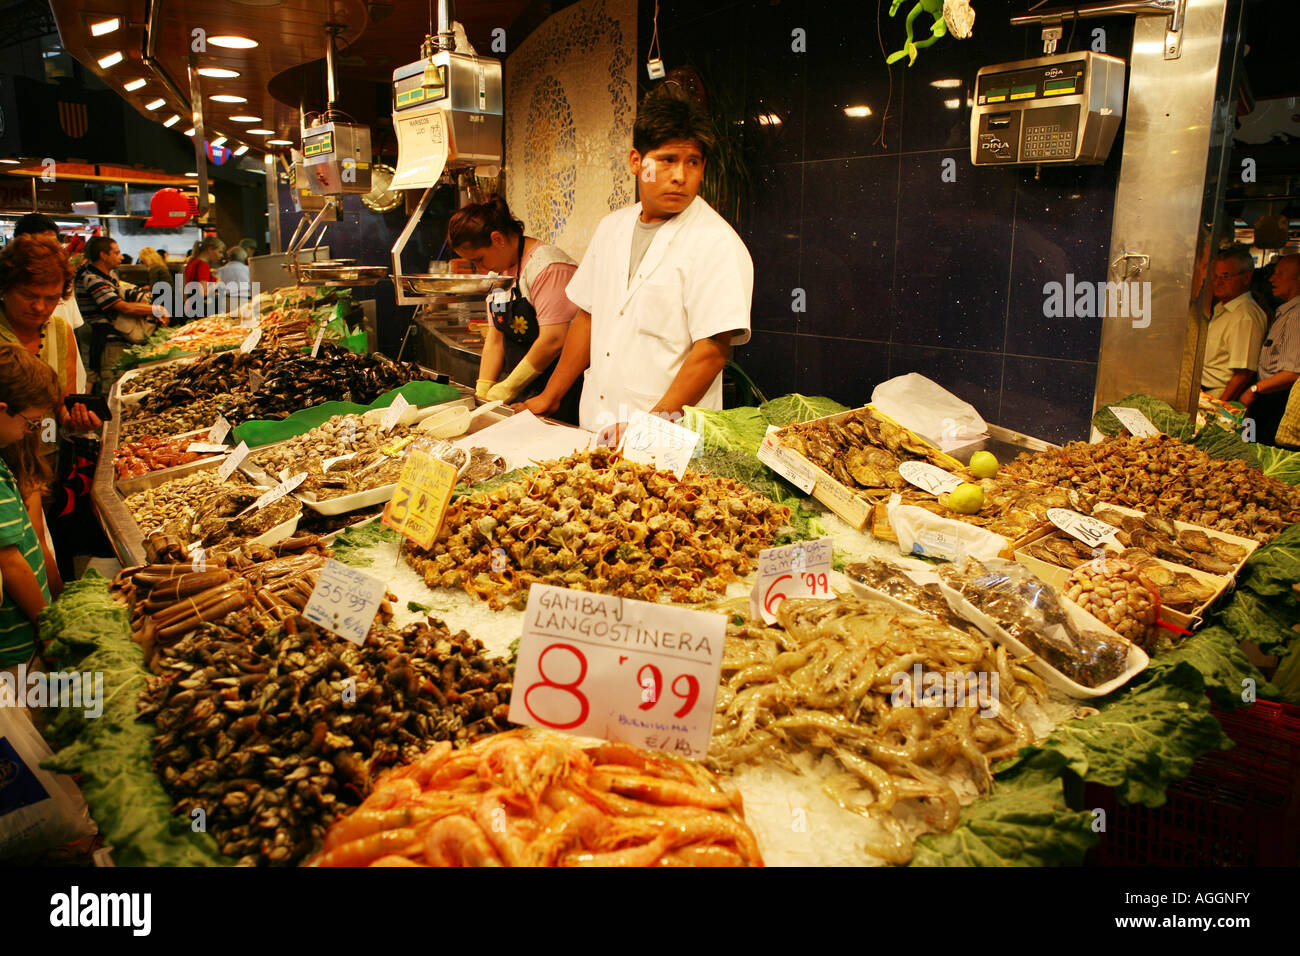 Seafood market in Barcelona, Spain - Stock Image